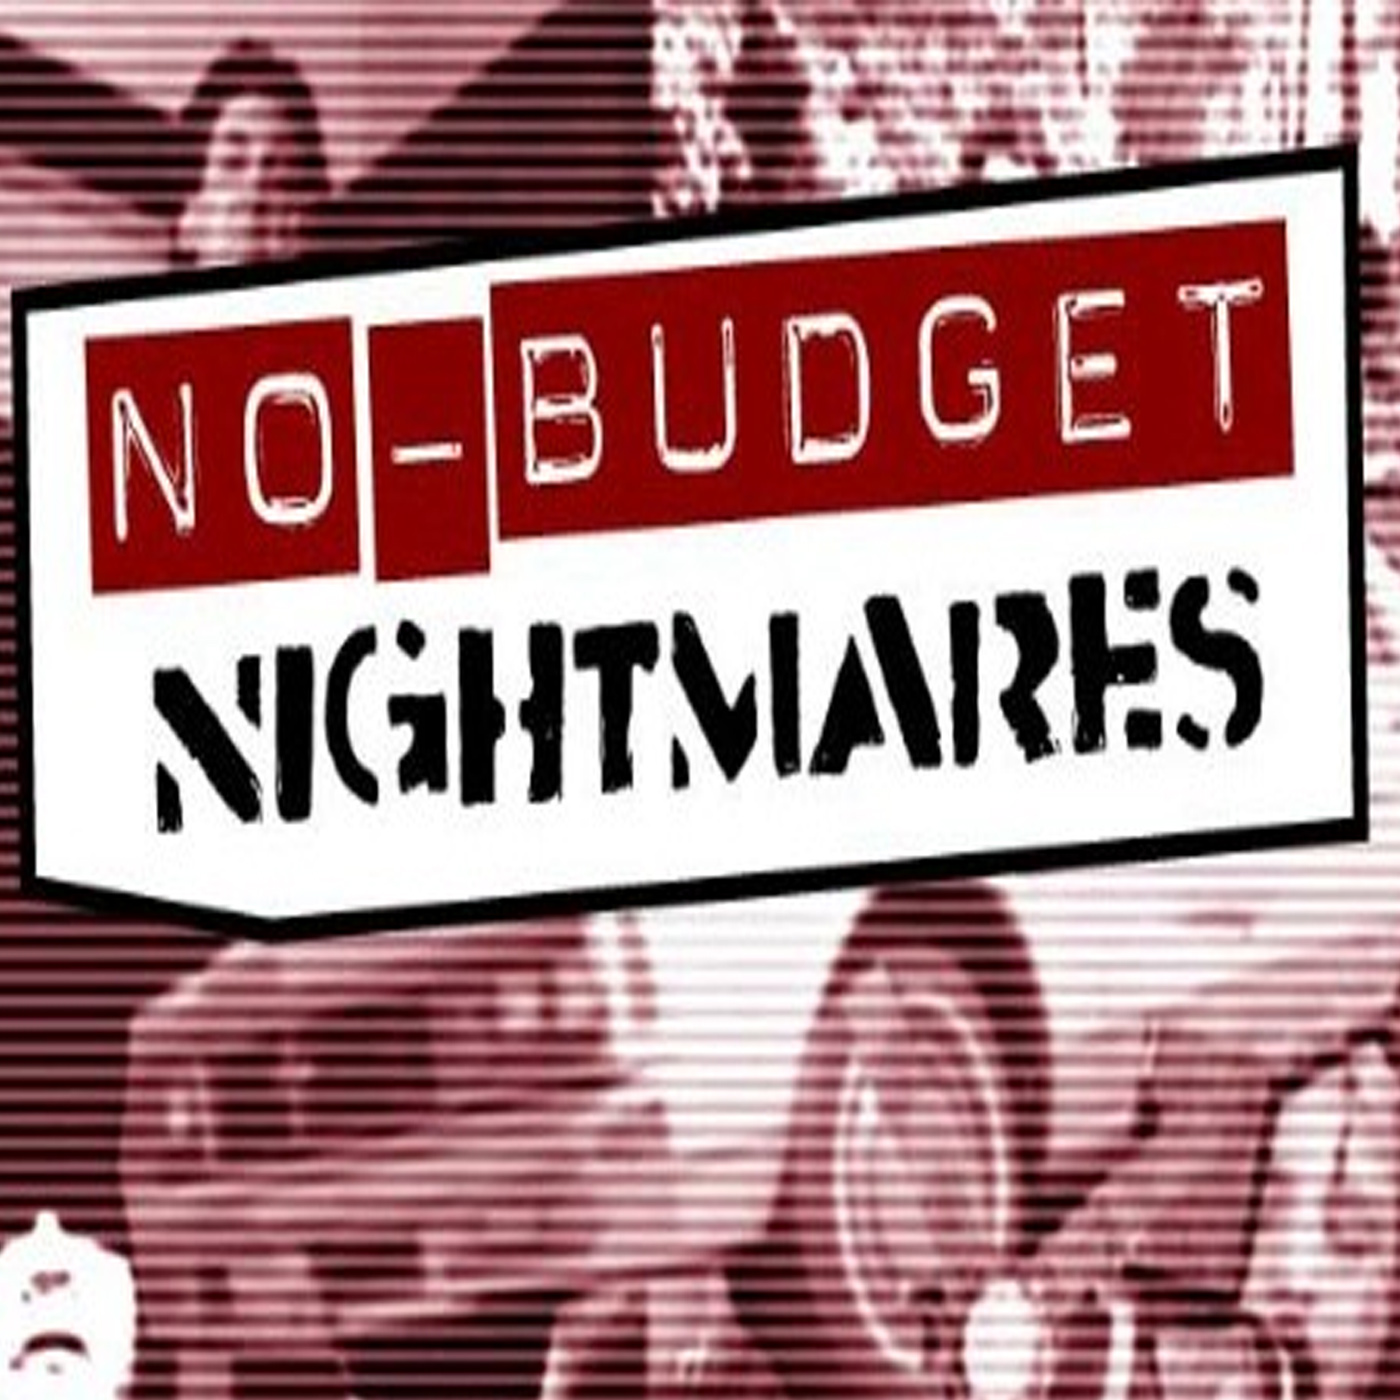 No-Budget Nightmares